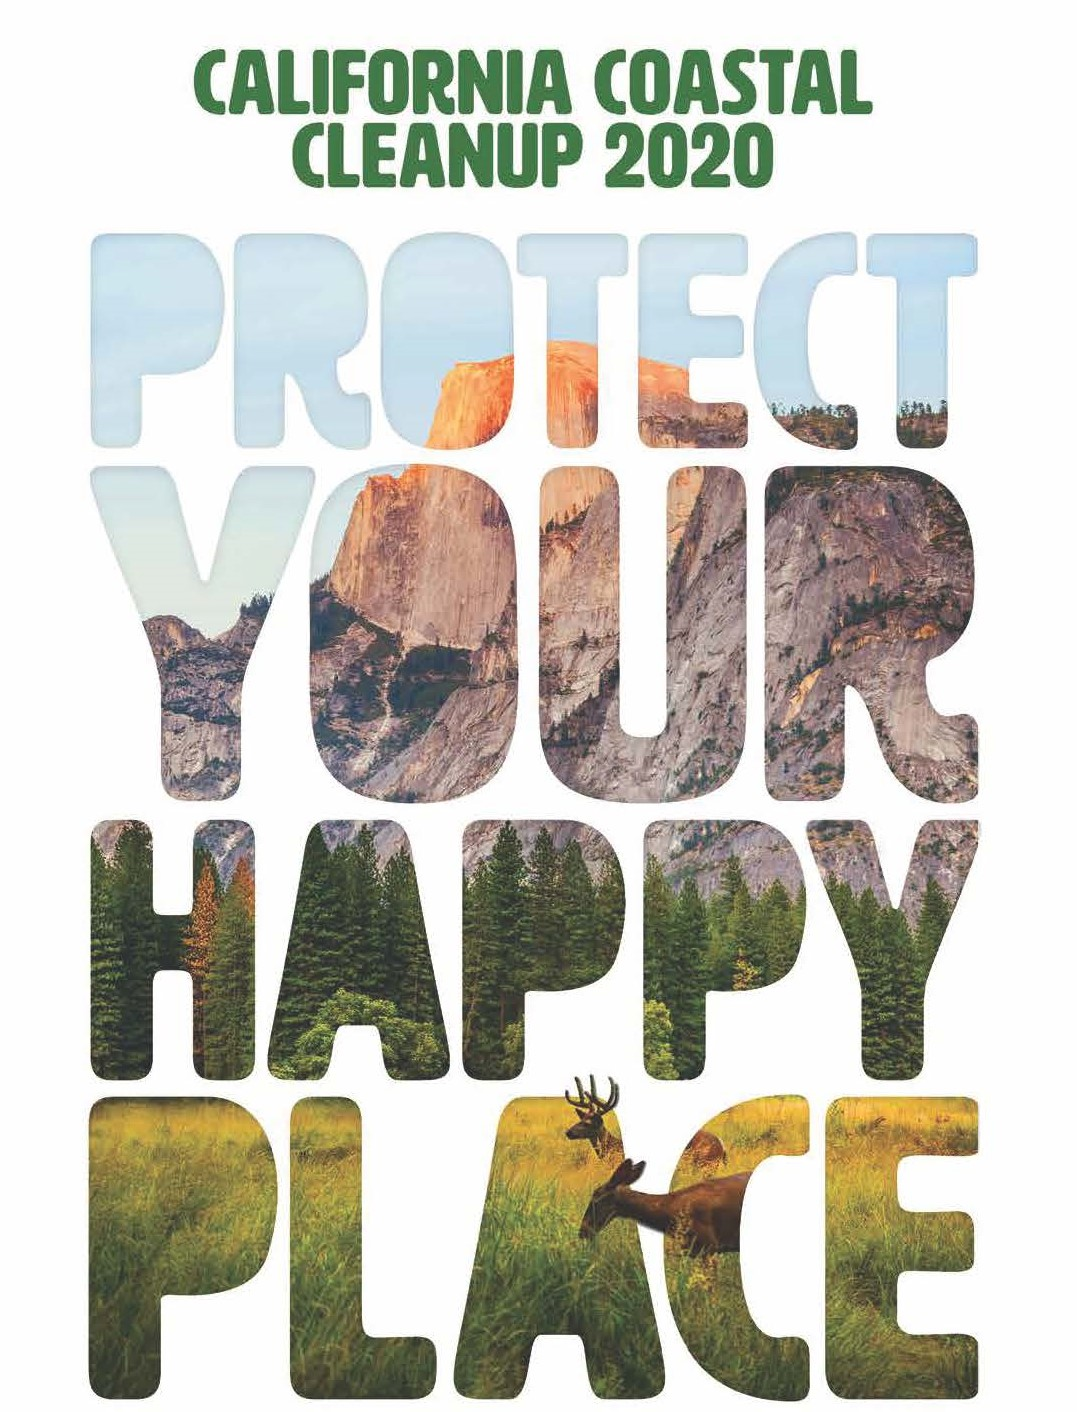 California Coastal Cleanup, Protect Your Happy Place. With image of Half Dome and grazing deer behind the letters